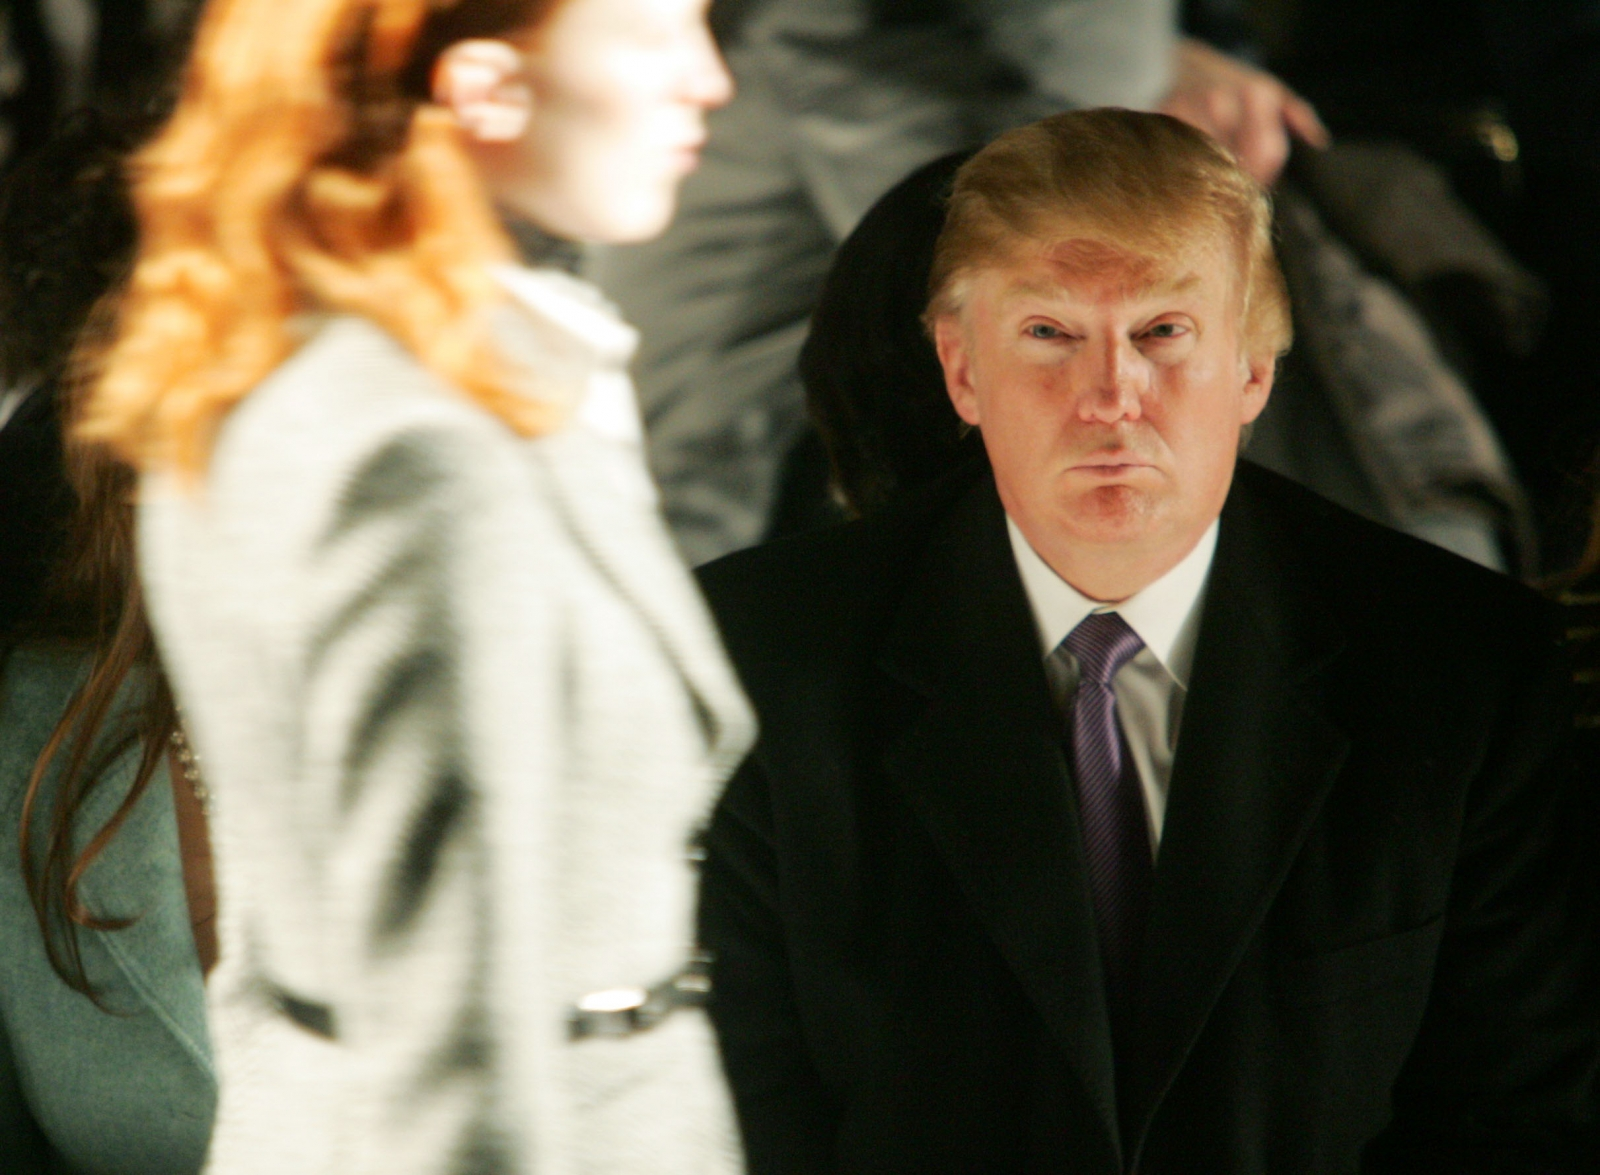 Donald Trump at fashion show